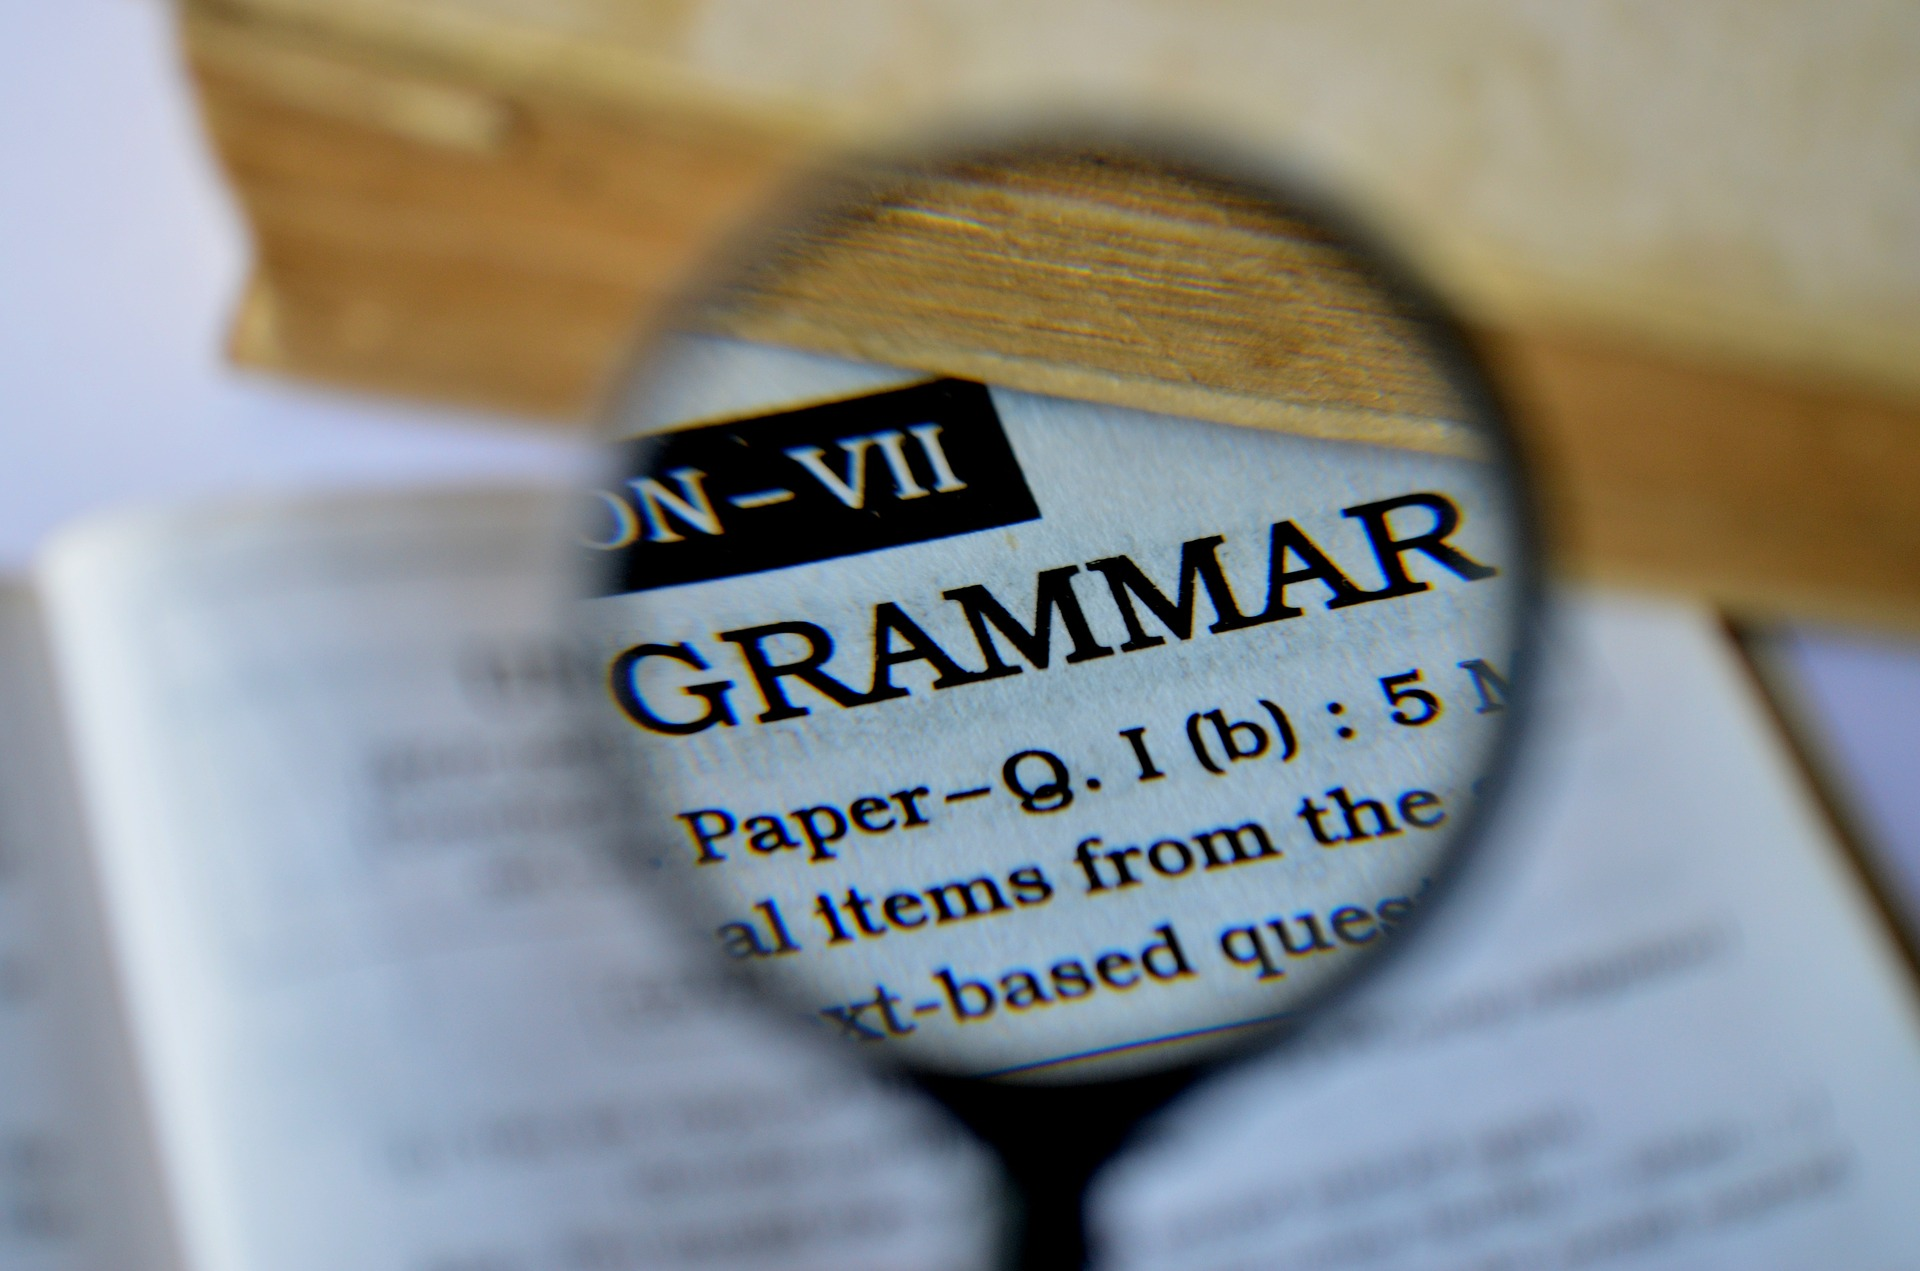 Online resources for learning English: Grammar